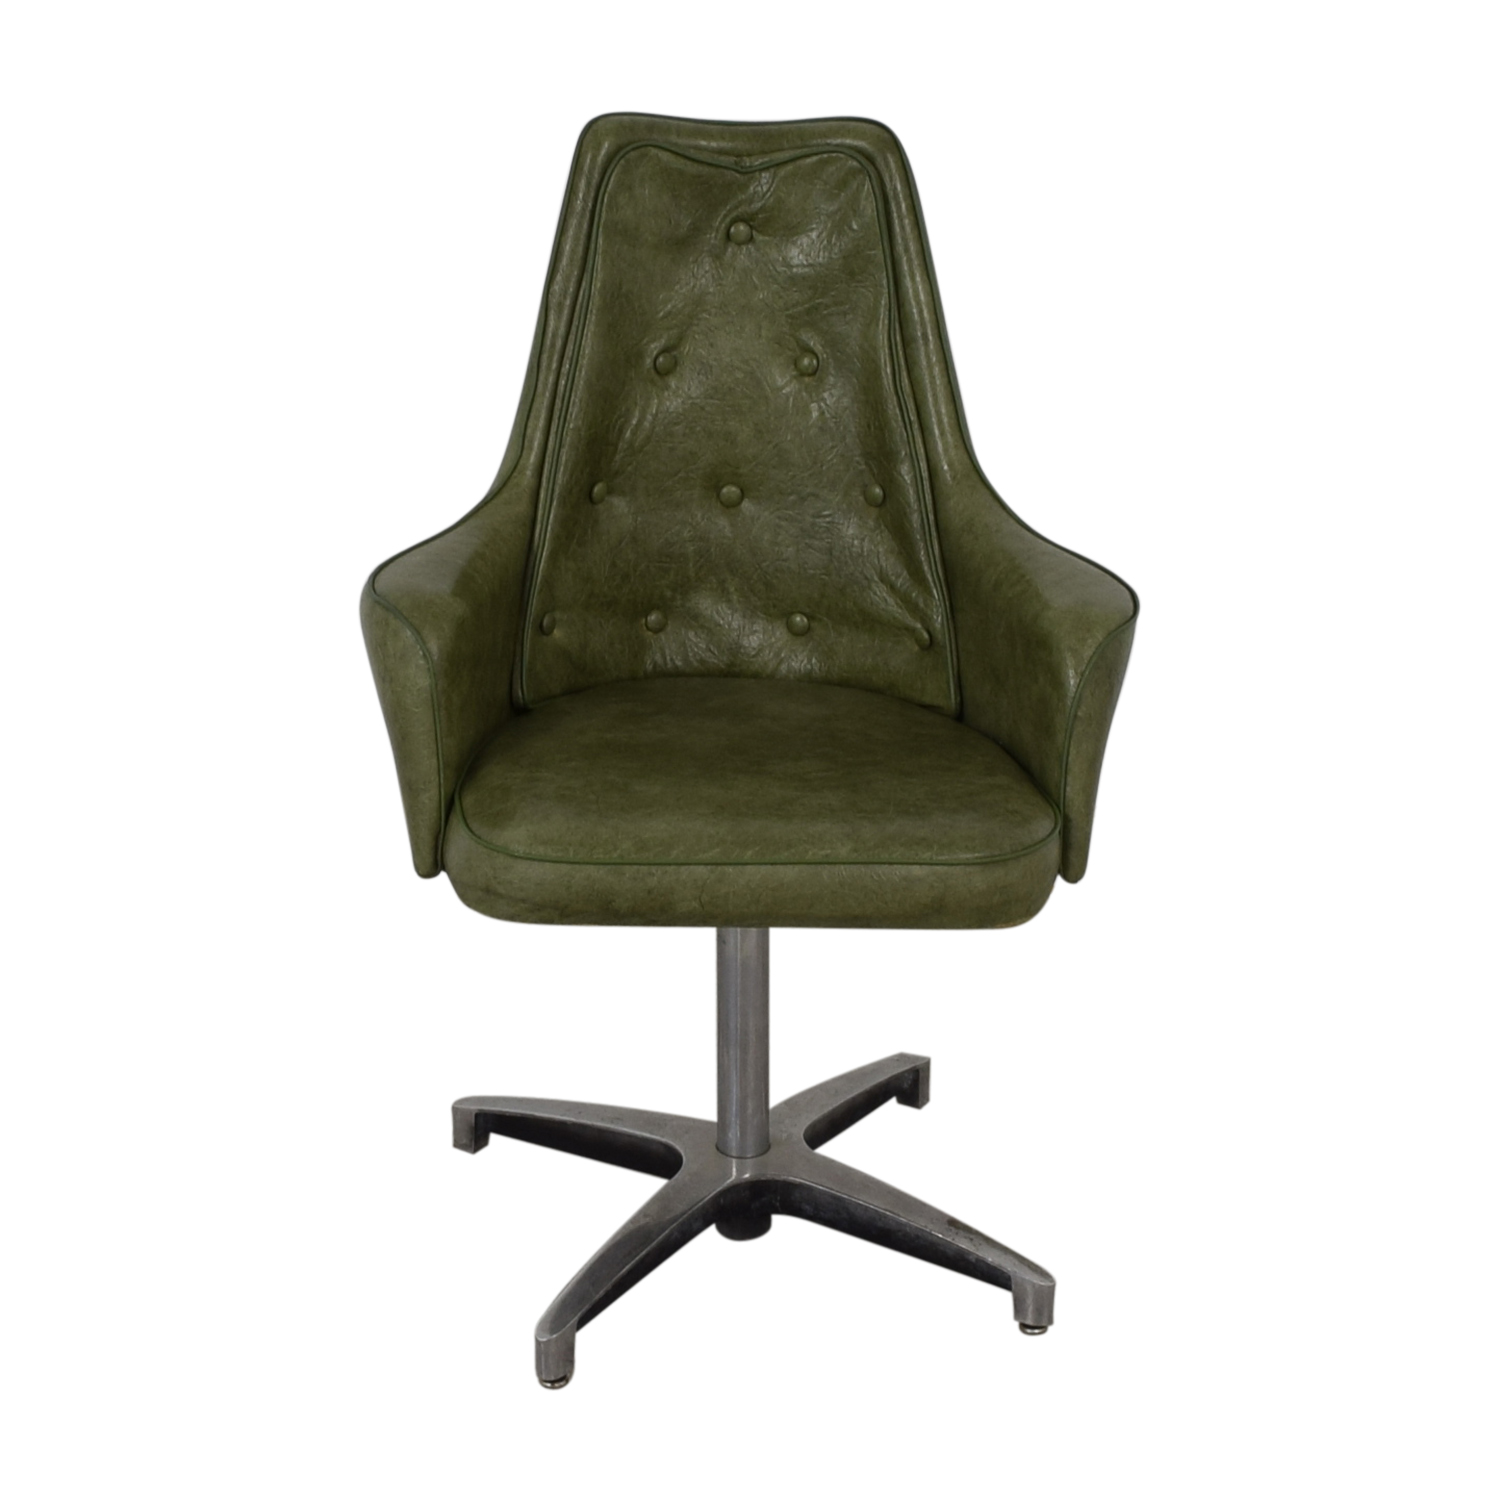 Spartan Chrome Furniture Spartan Chrome Furniture Green Leather Chair nj